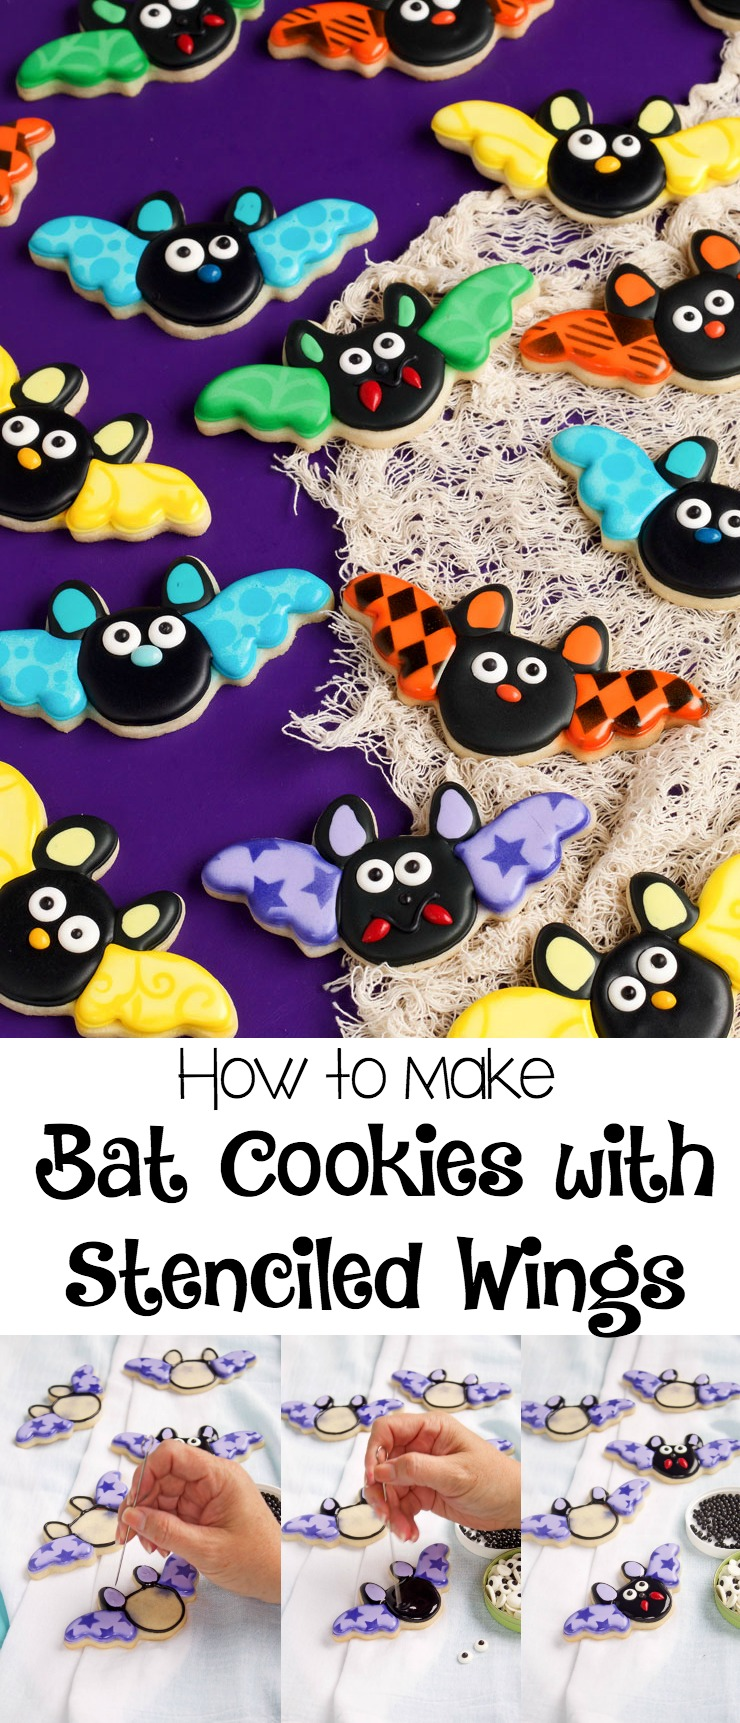 How to Make Bat Cookies with Stenciled Wings | The Bearfoot Baker